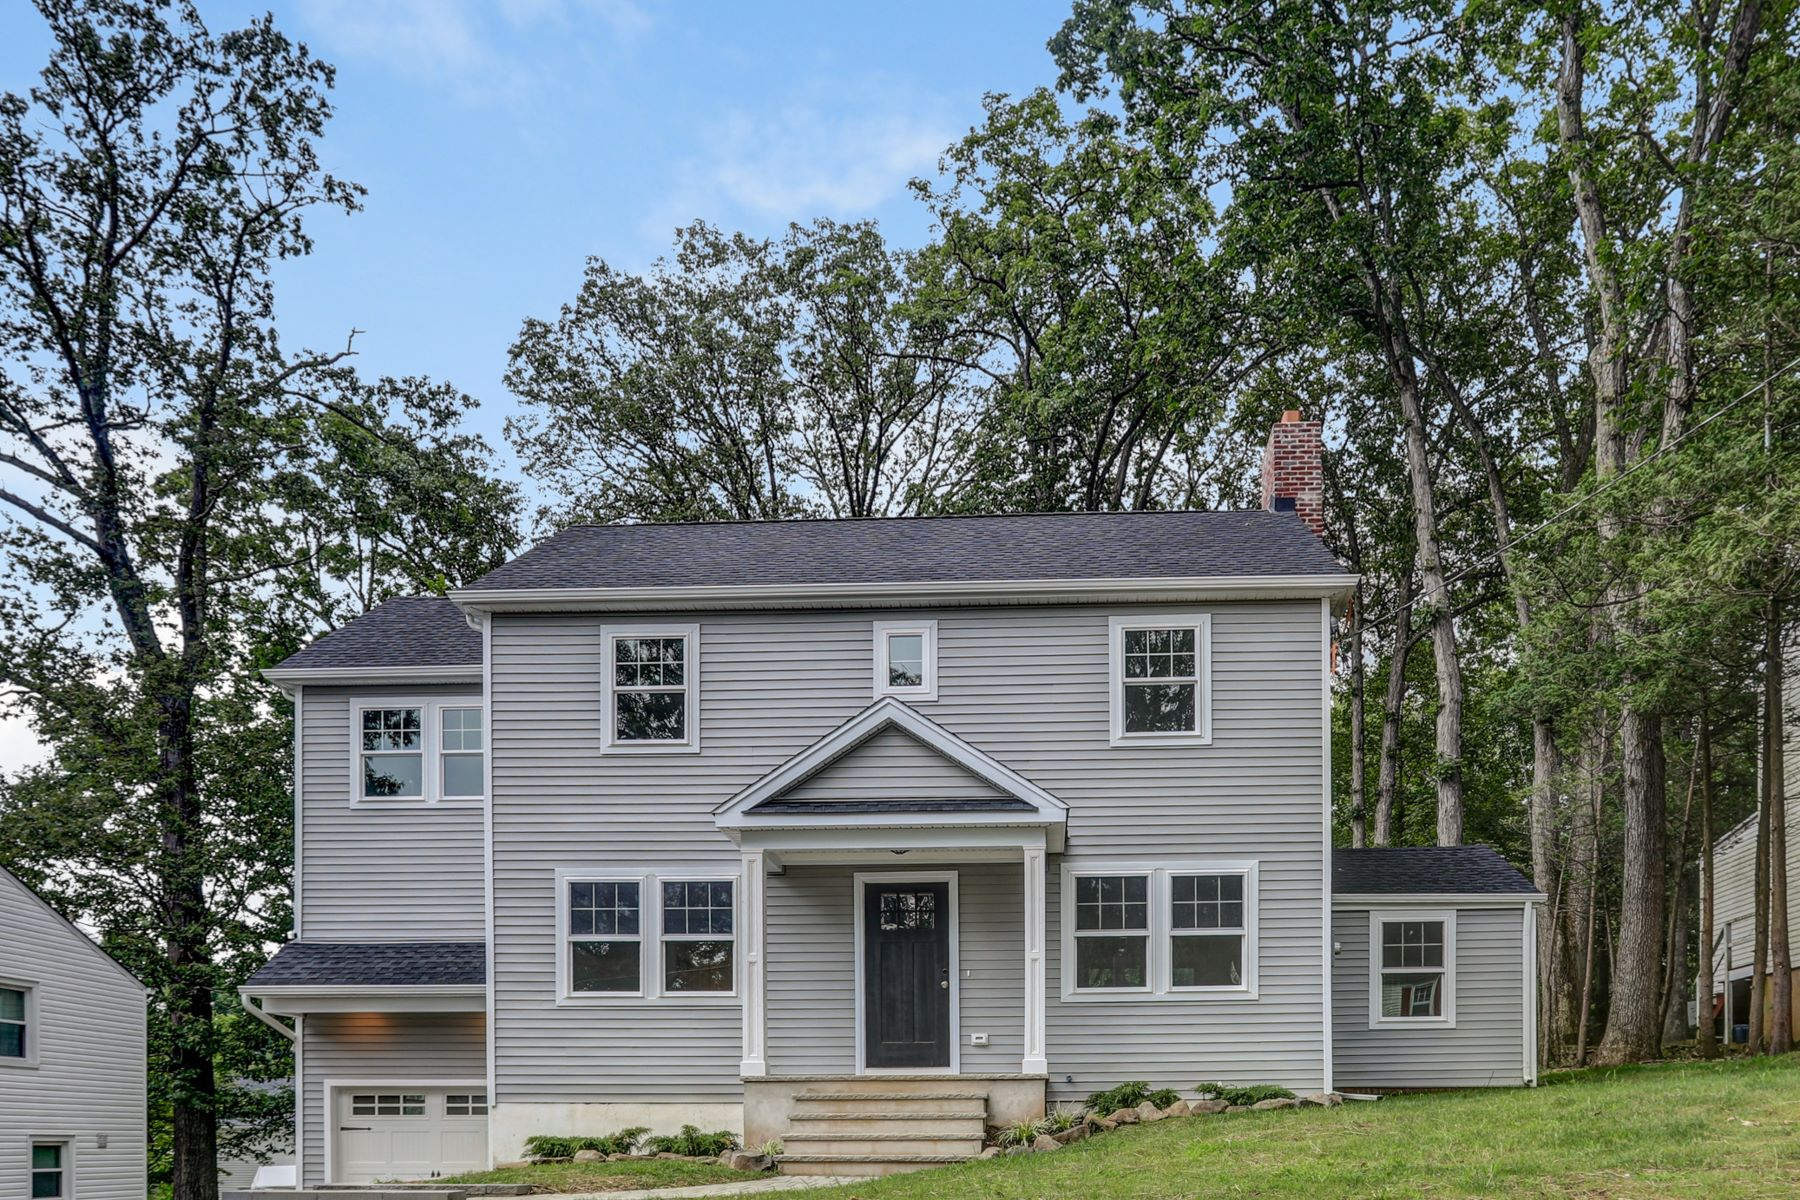 Single Family Homes for Active at Move-In Ready 24 West Lawn Road Livingston, New Jersey 07039 United States